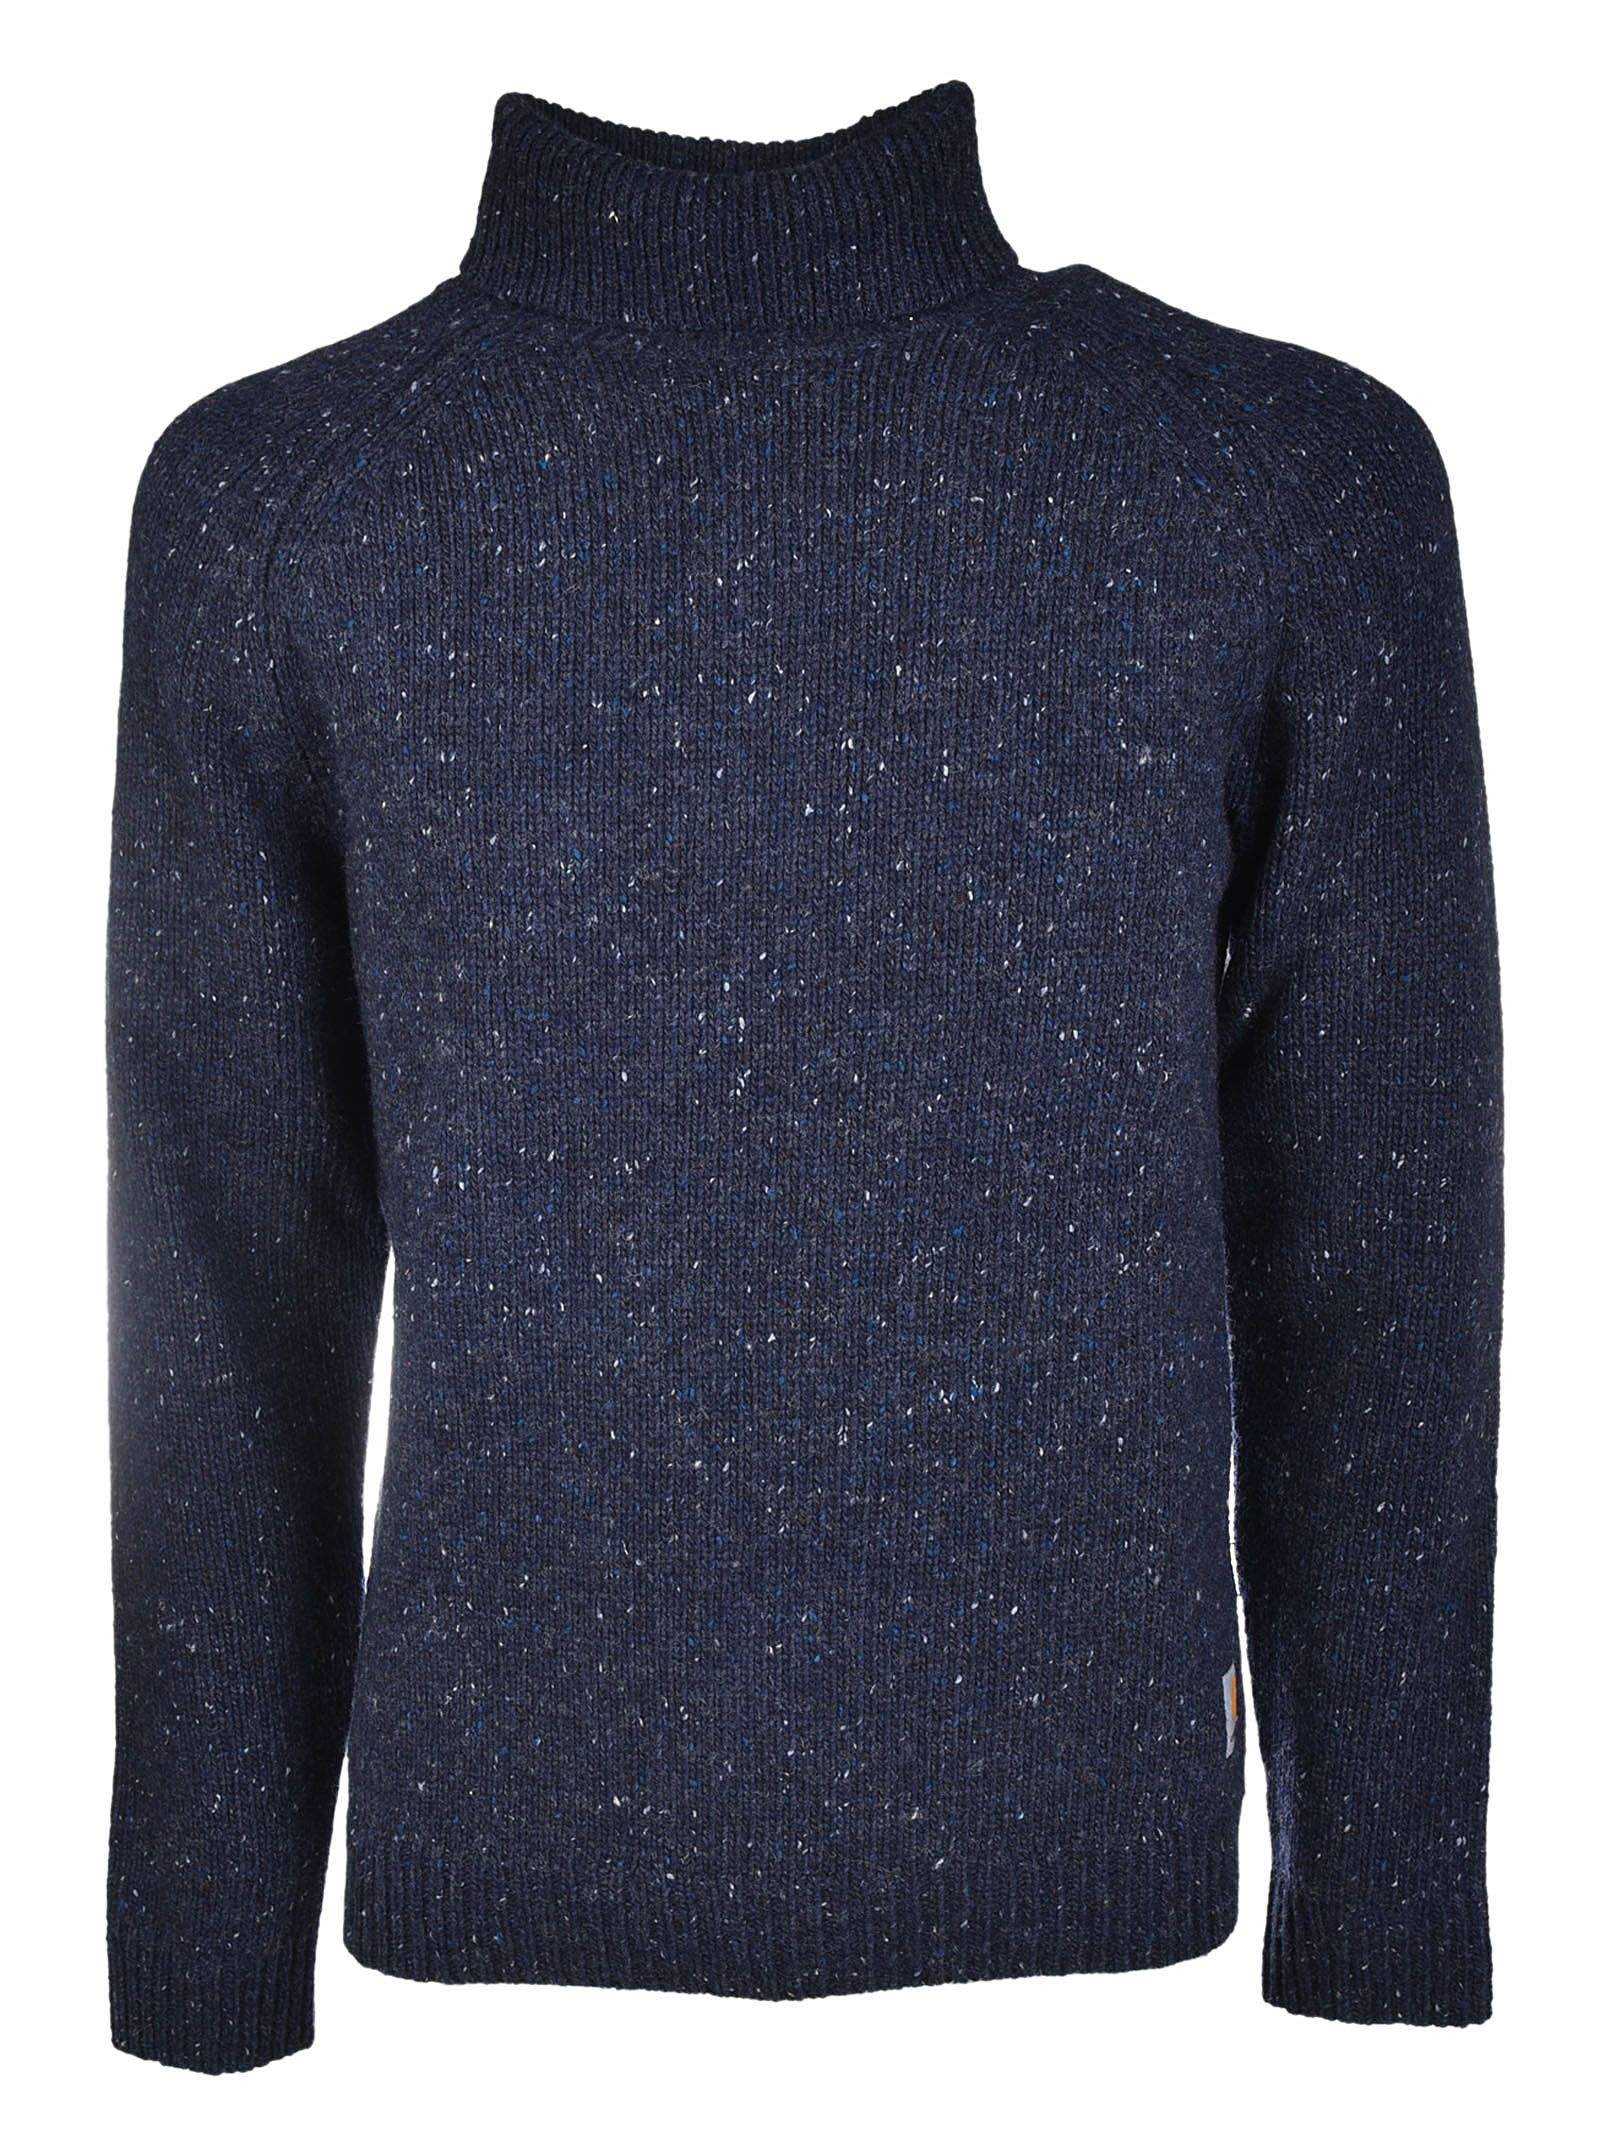 Carhartt - Carhartt Anglistic Turtleneck Sweater - Blue, Men's ...